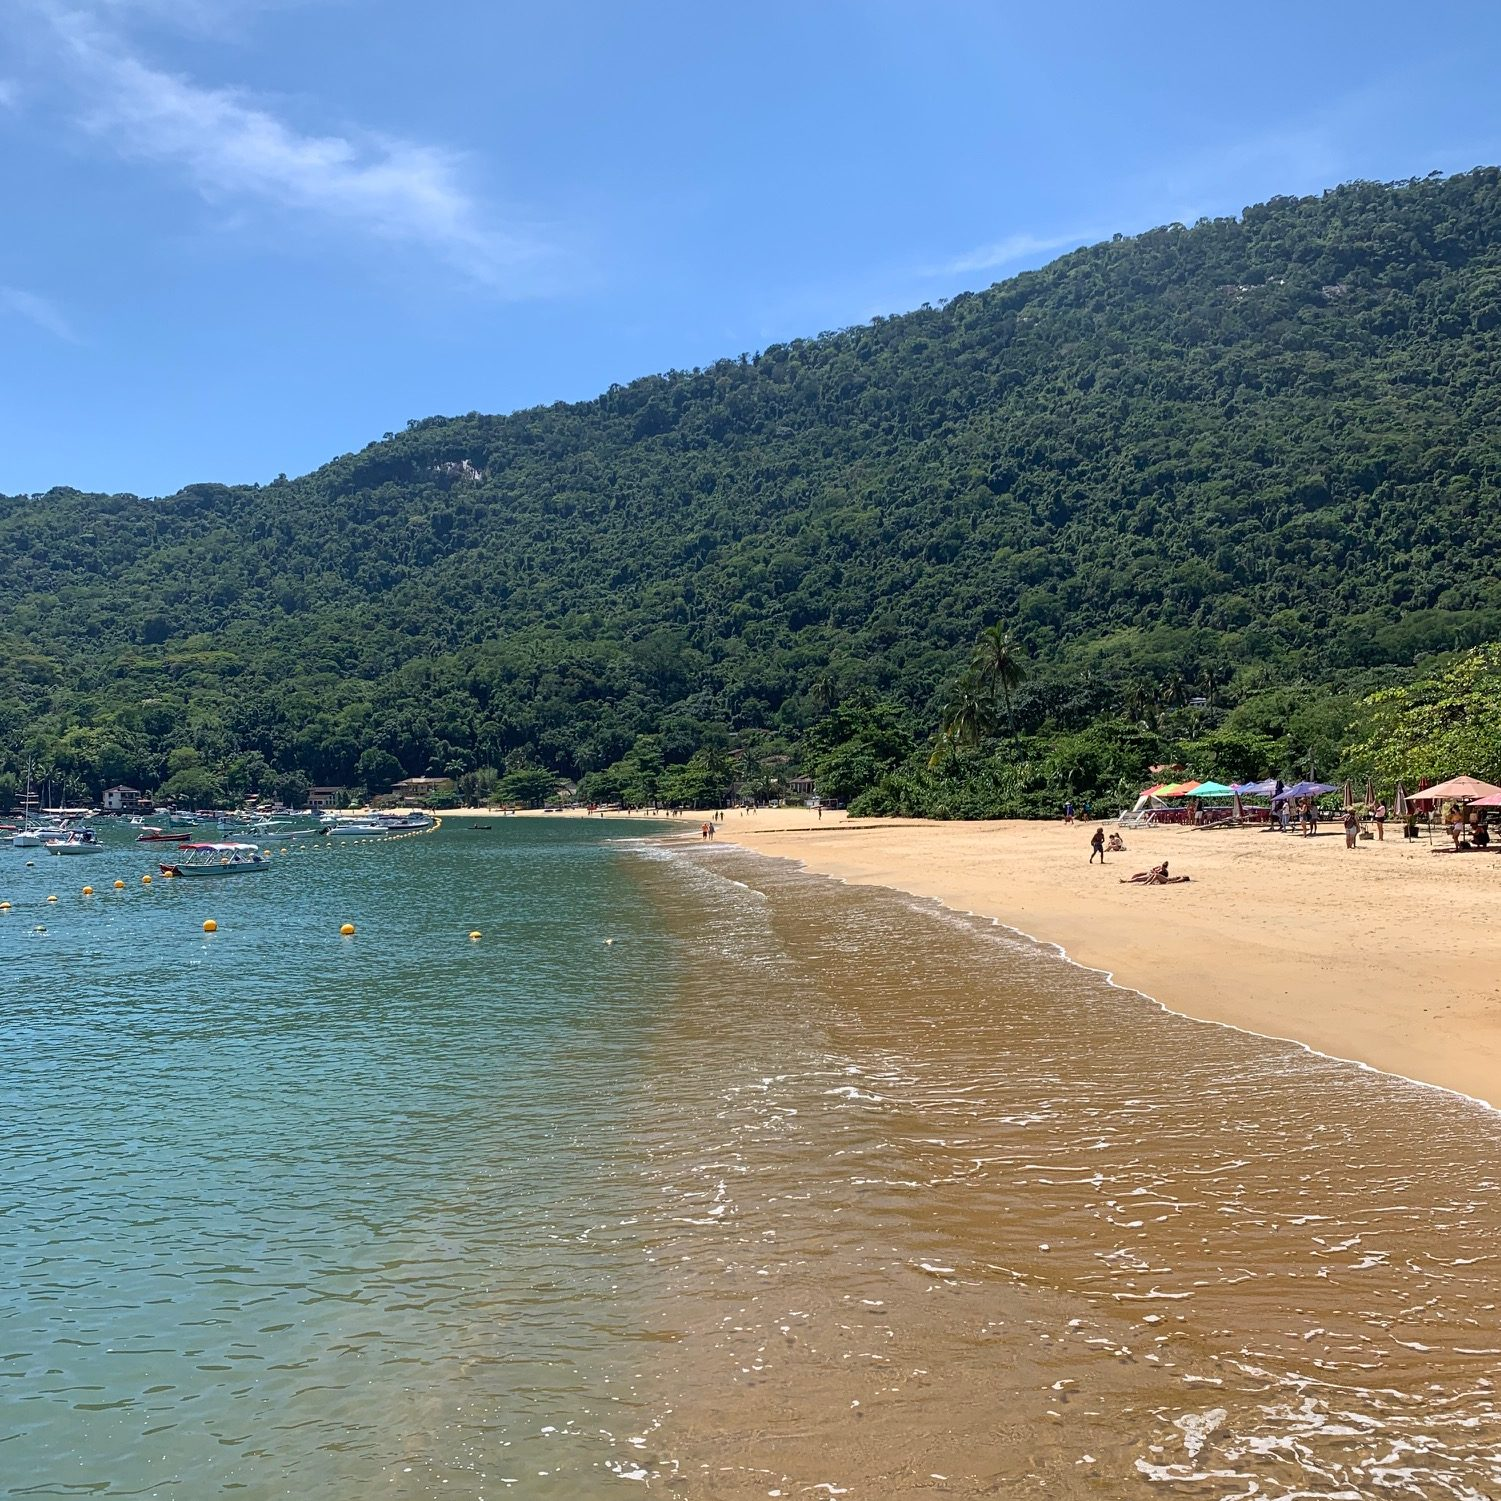 A vida lenta: Taking it easy on Ilha Grande, Brazil